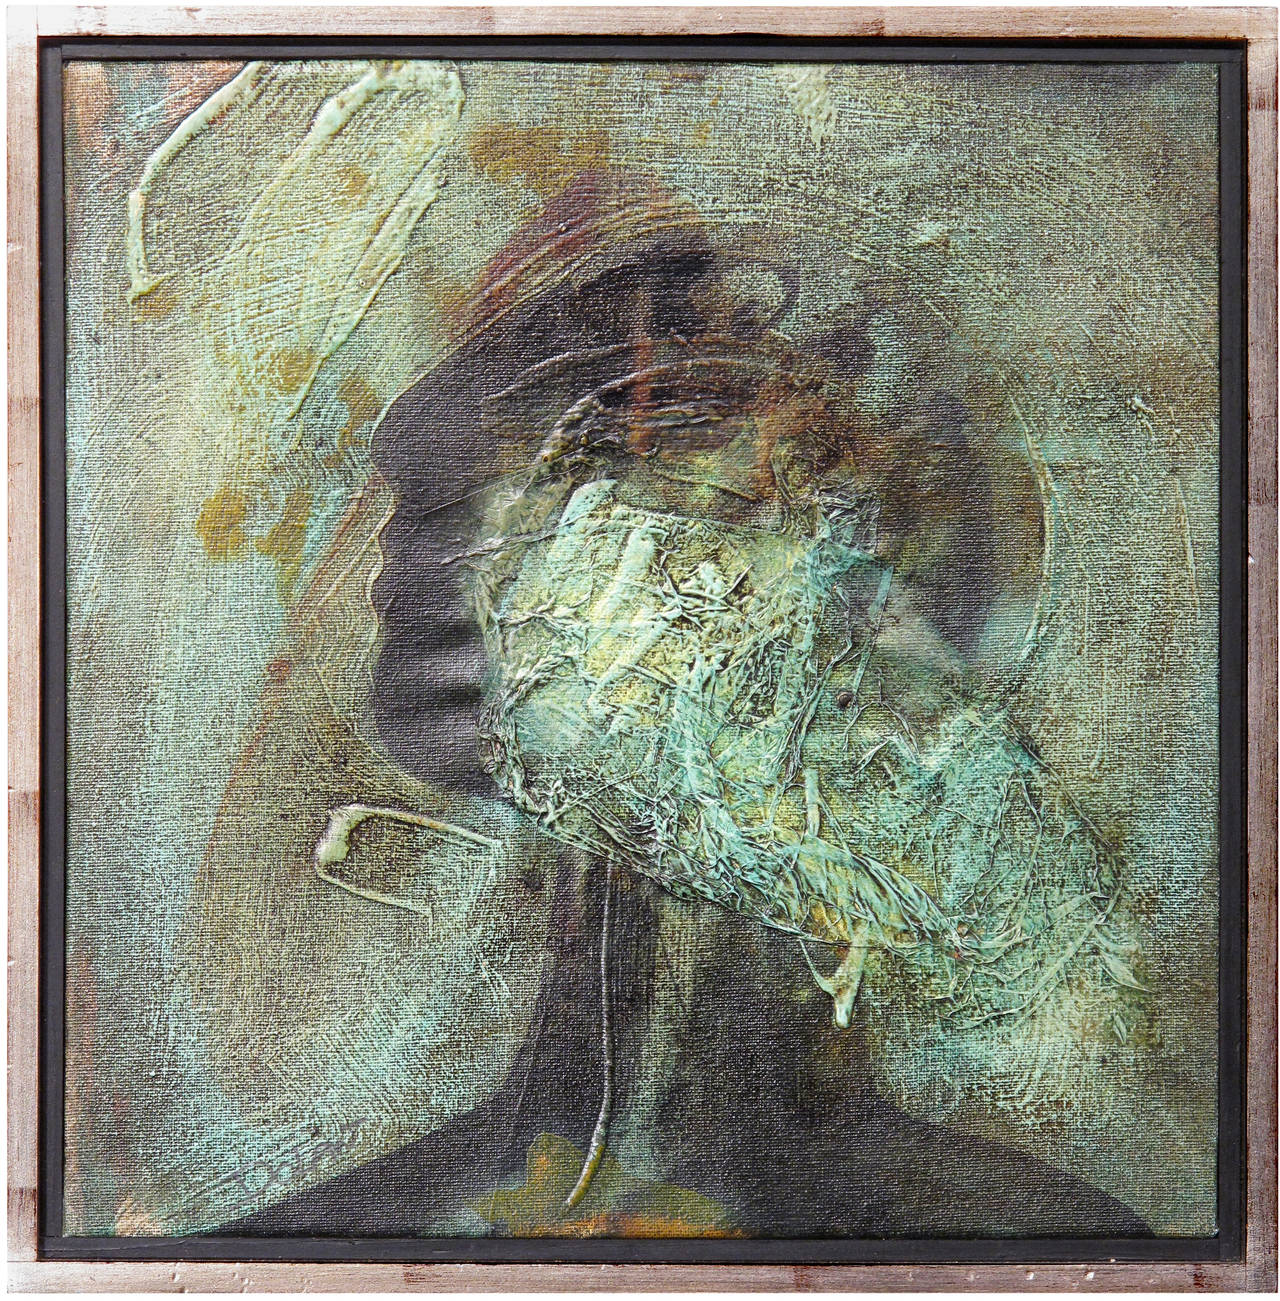 Portrait in Green with Veil - Painting by Chrissy Dolan Terrasi